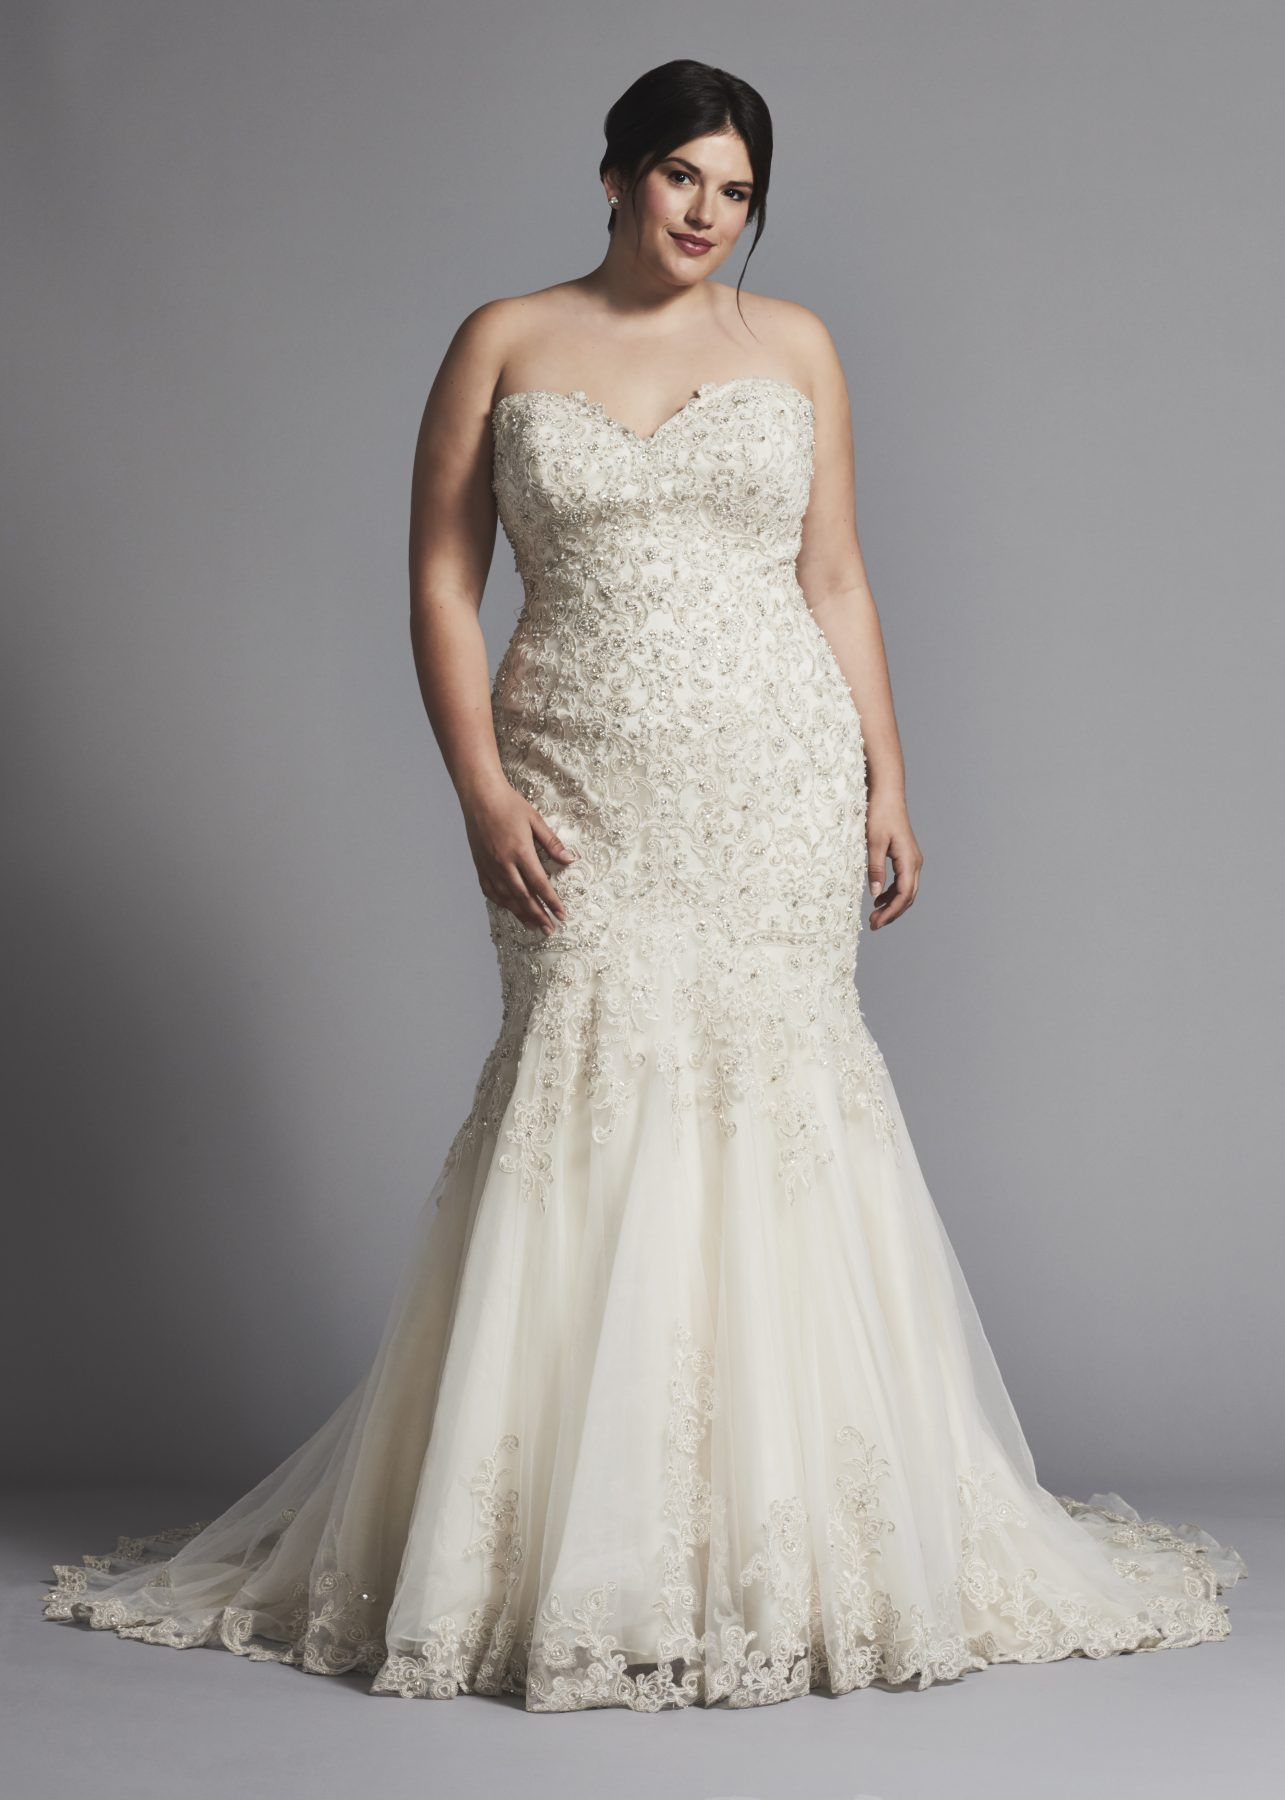 Tulle skirt wedding dress  Strapless fit and flare beaded wedding dress with tulle skirt